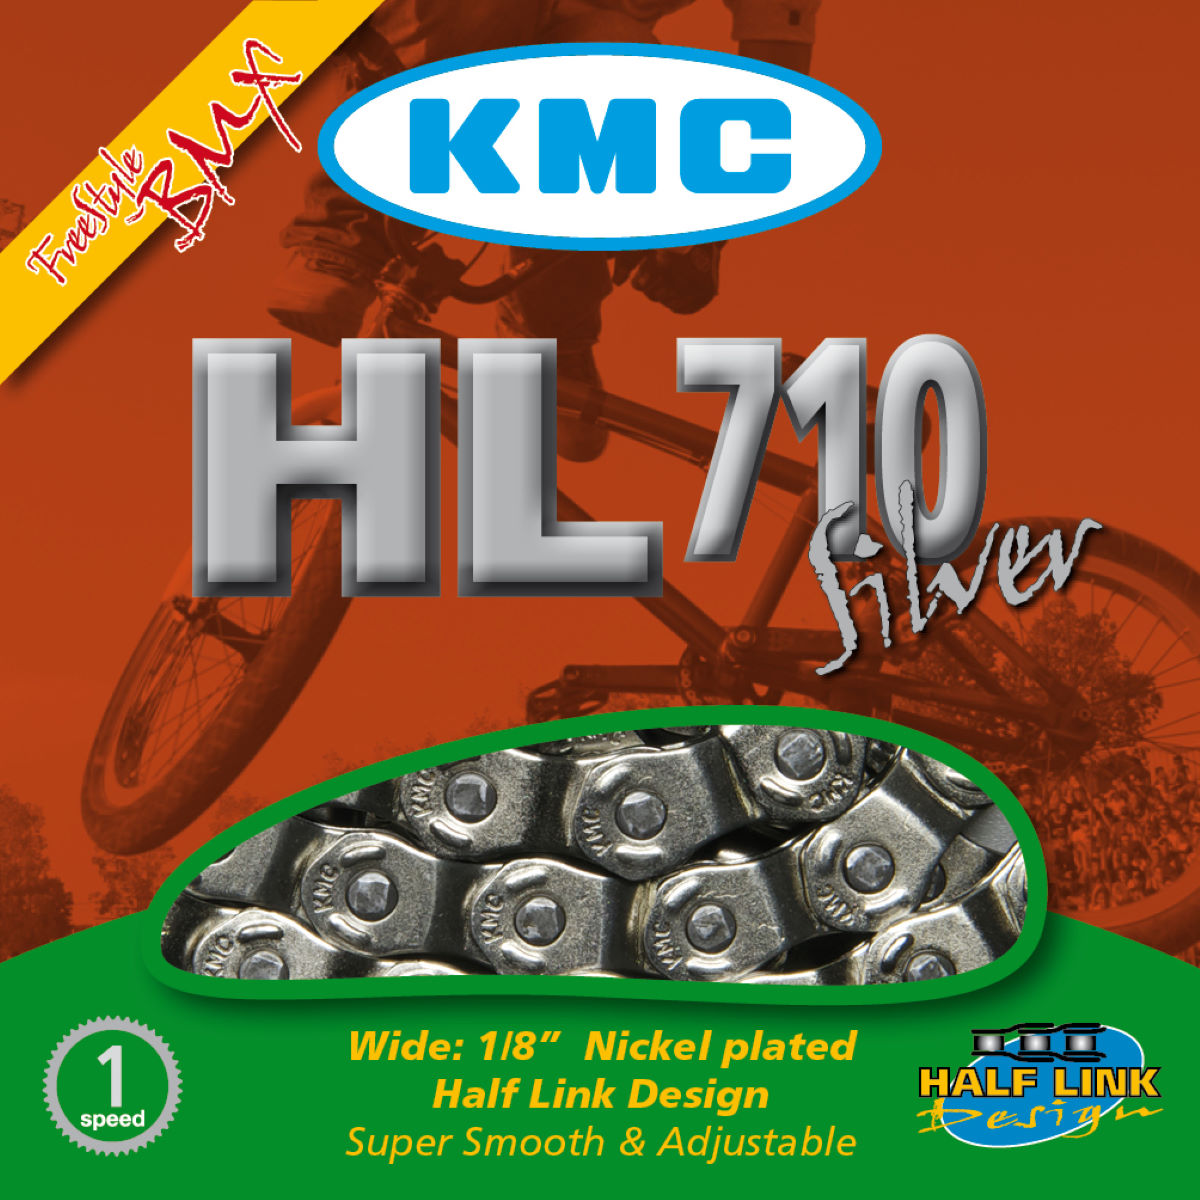 Chaîne single-speed KMC HL710 Demi-maillons - 1 1/8'' 104 Links